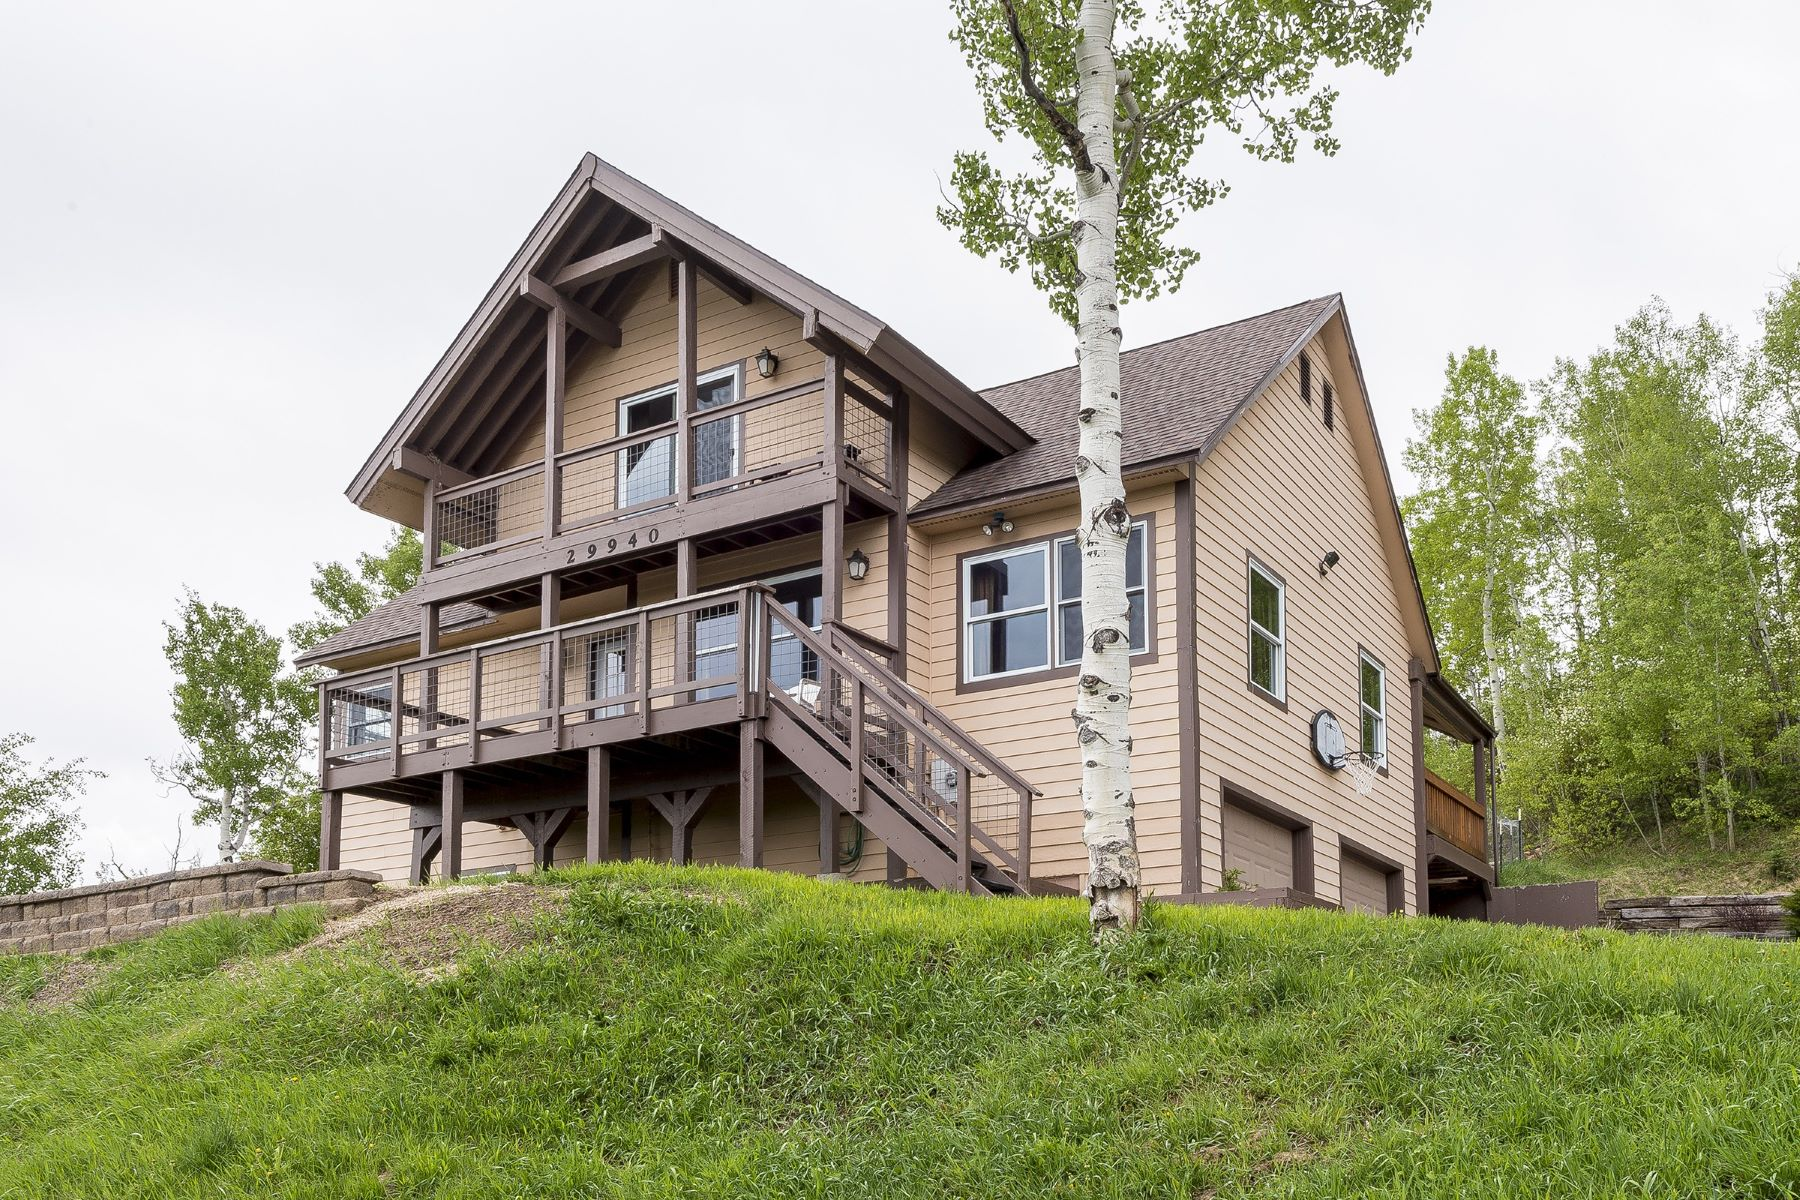 Single Family Home for Sale at Home with Lake Views 29940 Rock Point Trail Oak Creek, Colorado, OAK C United States